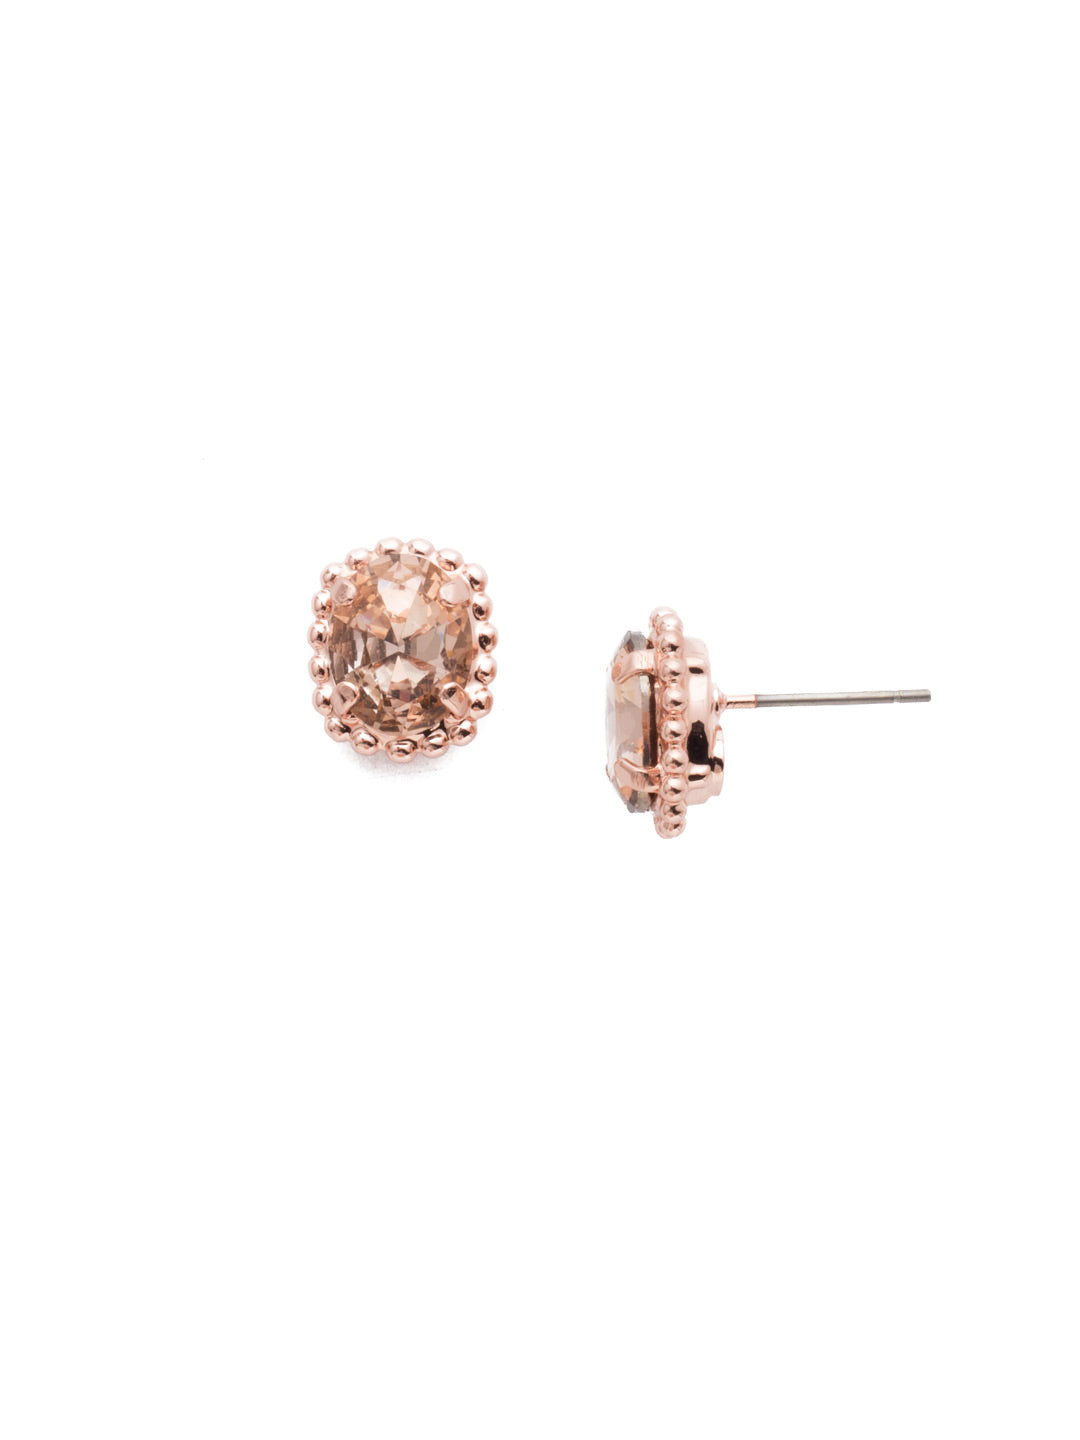 Oval-Cut Solitaire Stud Earrings - EDQ10RGLVP